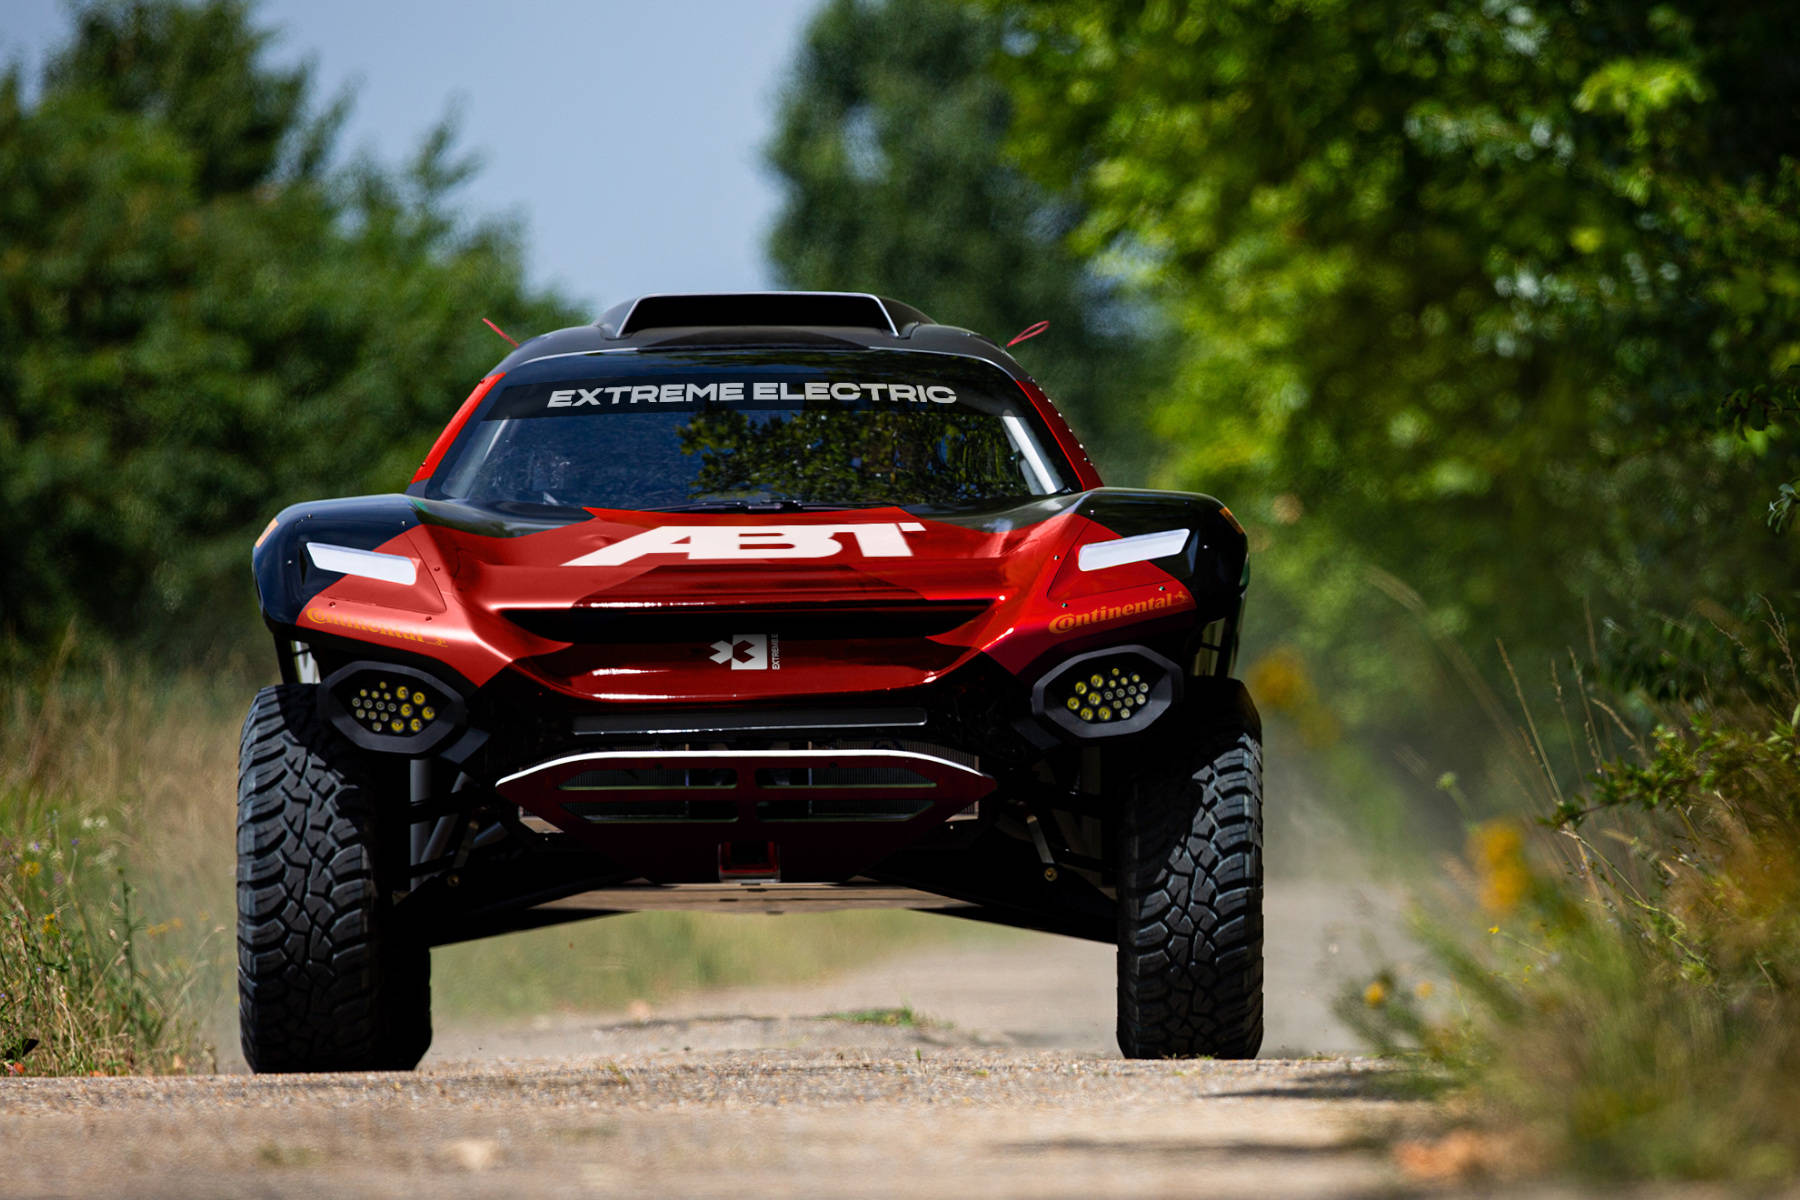 ABT Sportsline says it wants to take part in a brand-new series dubbed the Extreme-E, which should start in 2021 as a single-make event among all-electric SUVs.